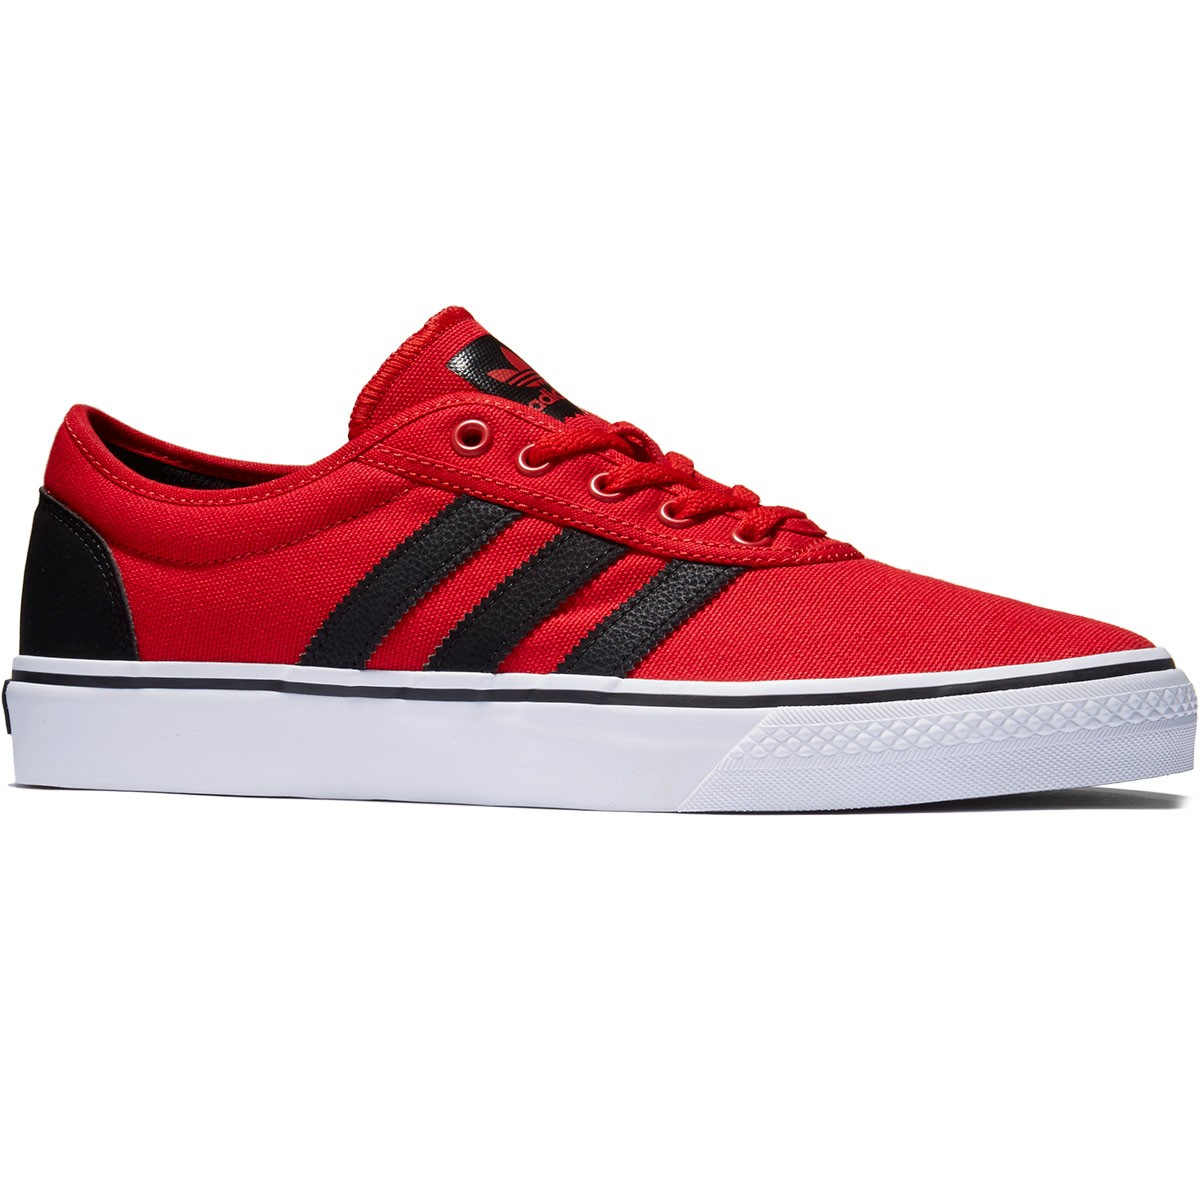 Adidas adi Ease Shoes - Scarlet/Black/White - 8.0